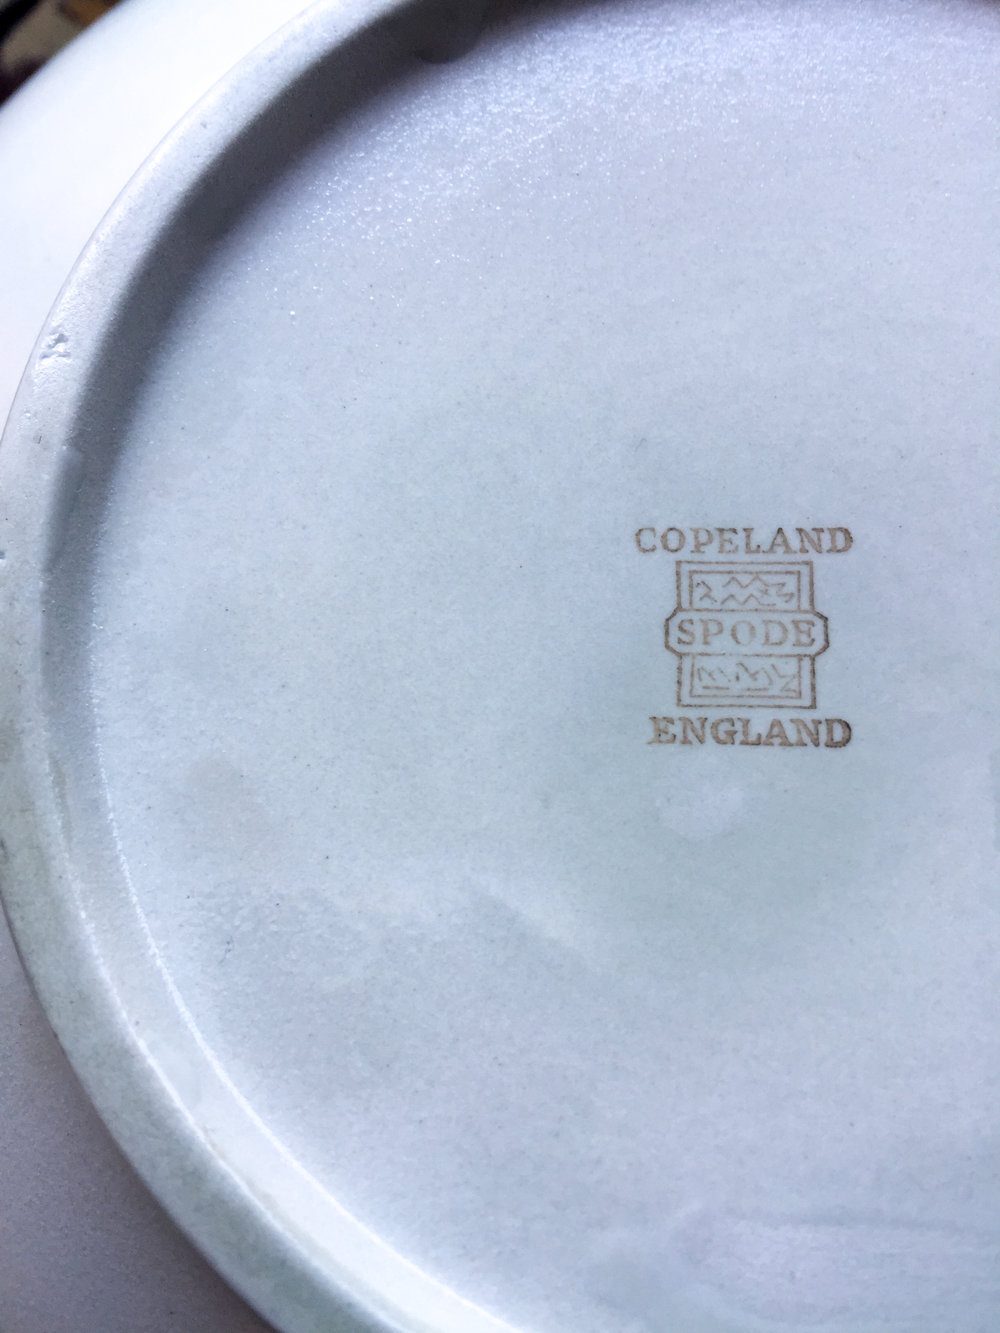 spodes of england pottery bowl sentimental item